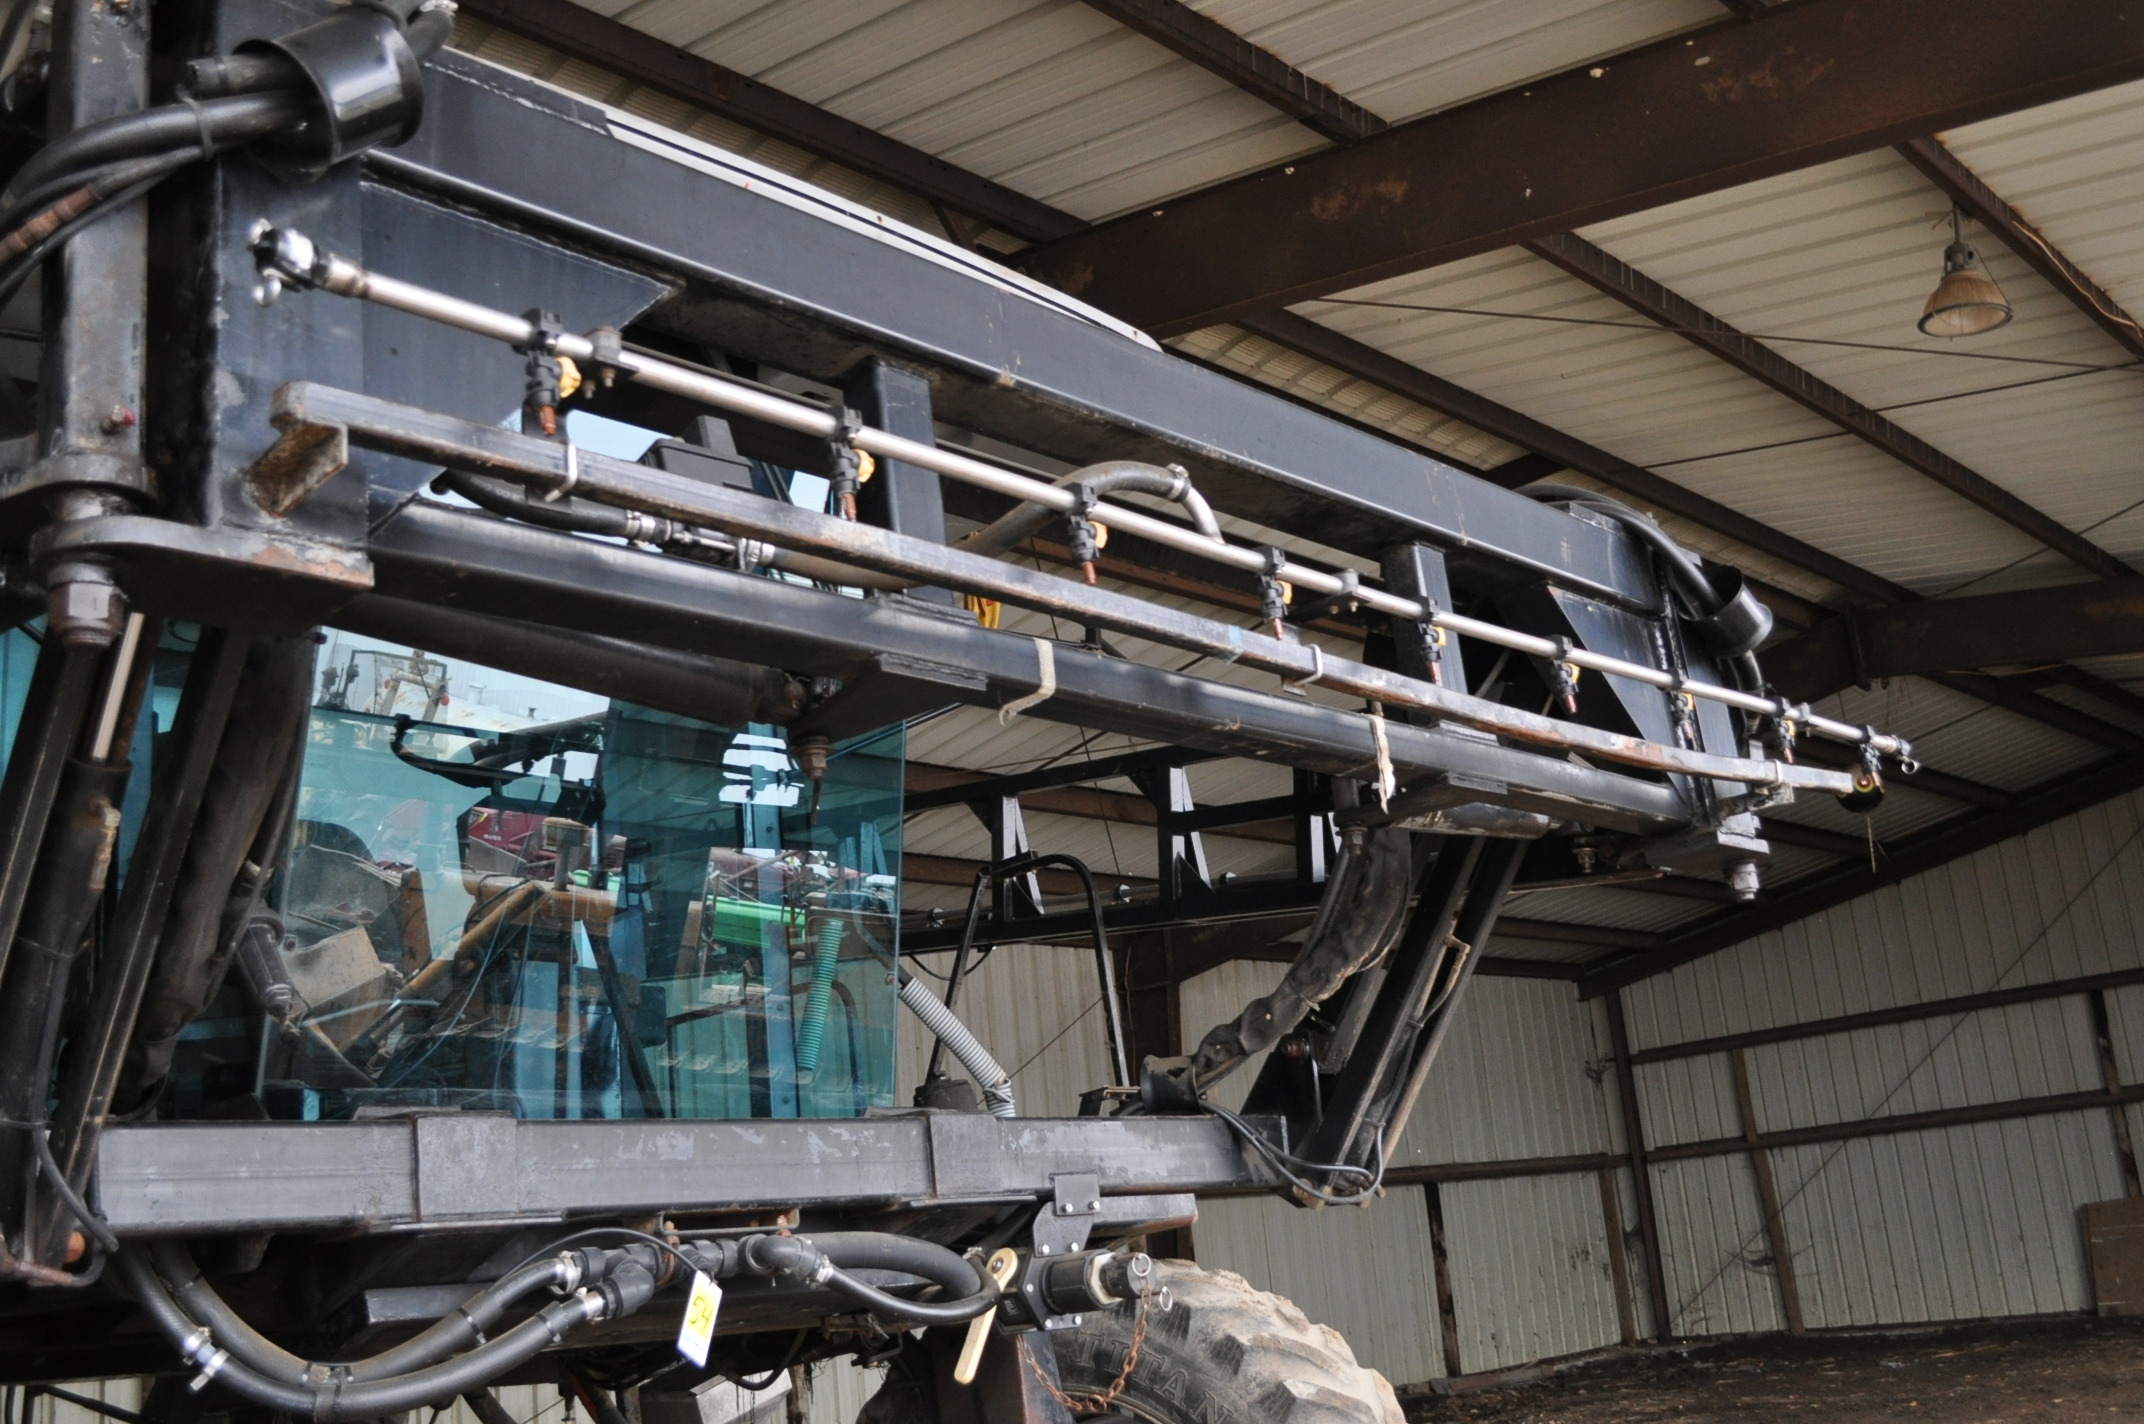 """Silver Wheels Voyager 2000 sprayer, 14.9R46 tires, hydrostatic, 90' boom, 15"""" nozzle spacing, 1000 - Image 11 of 21"""